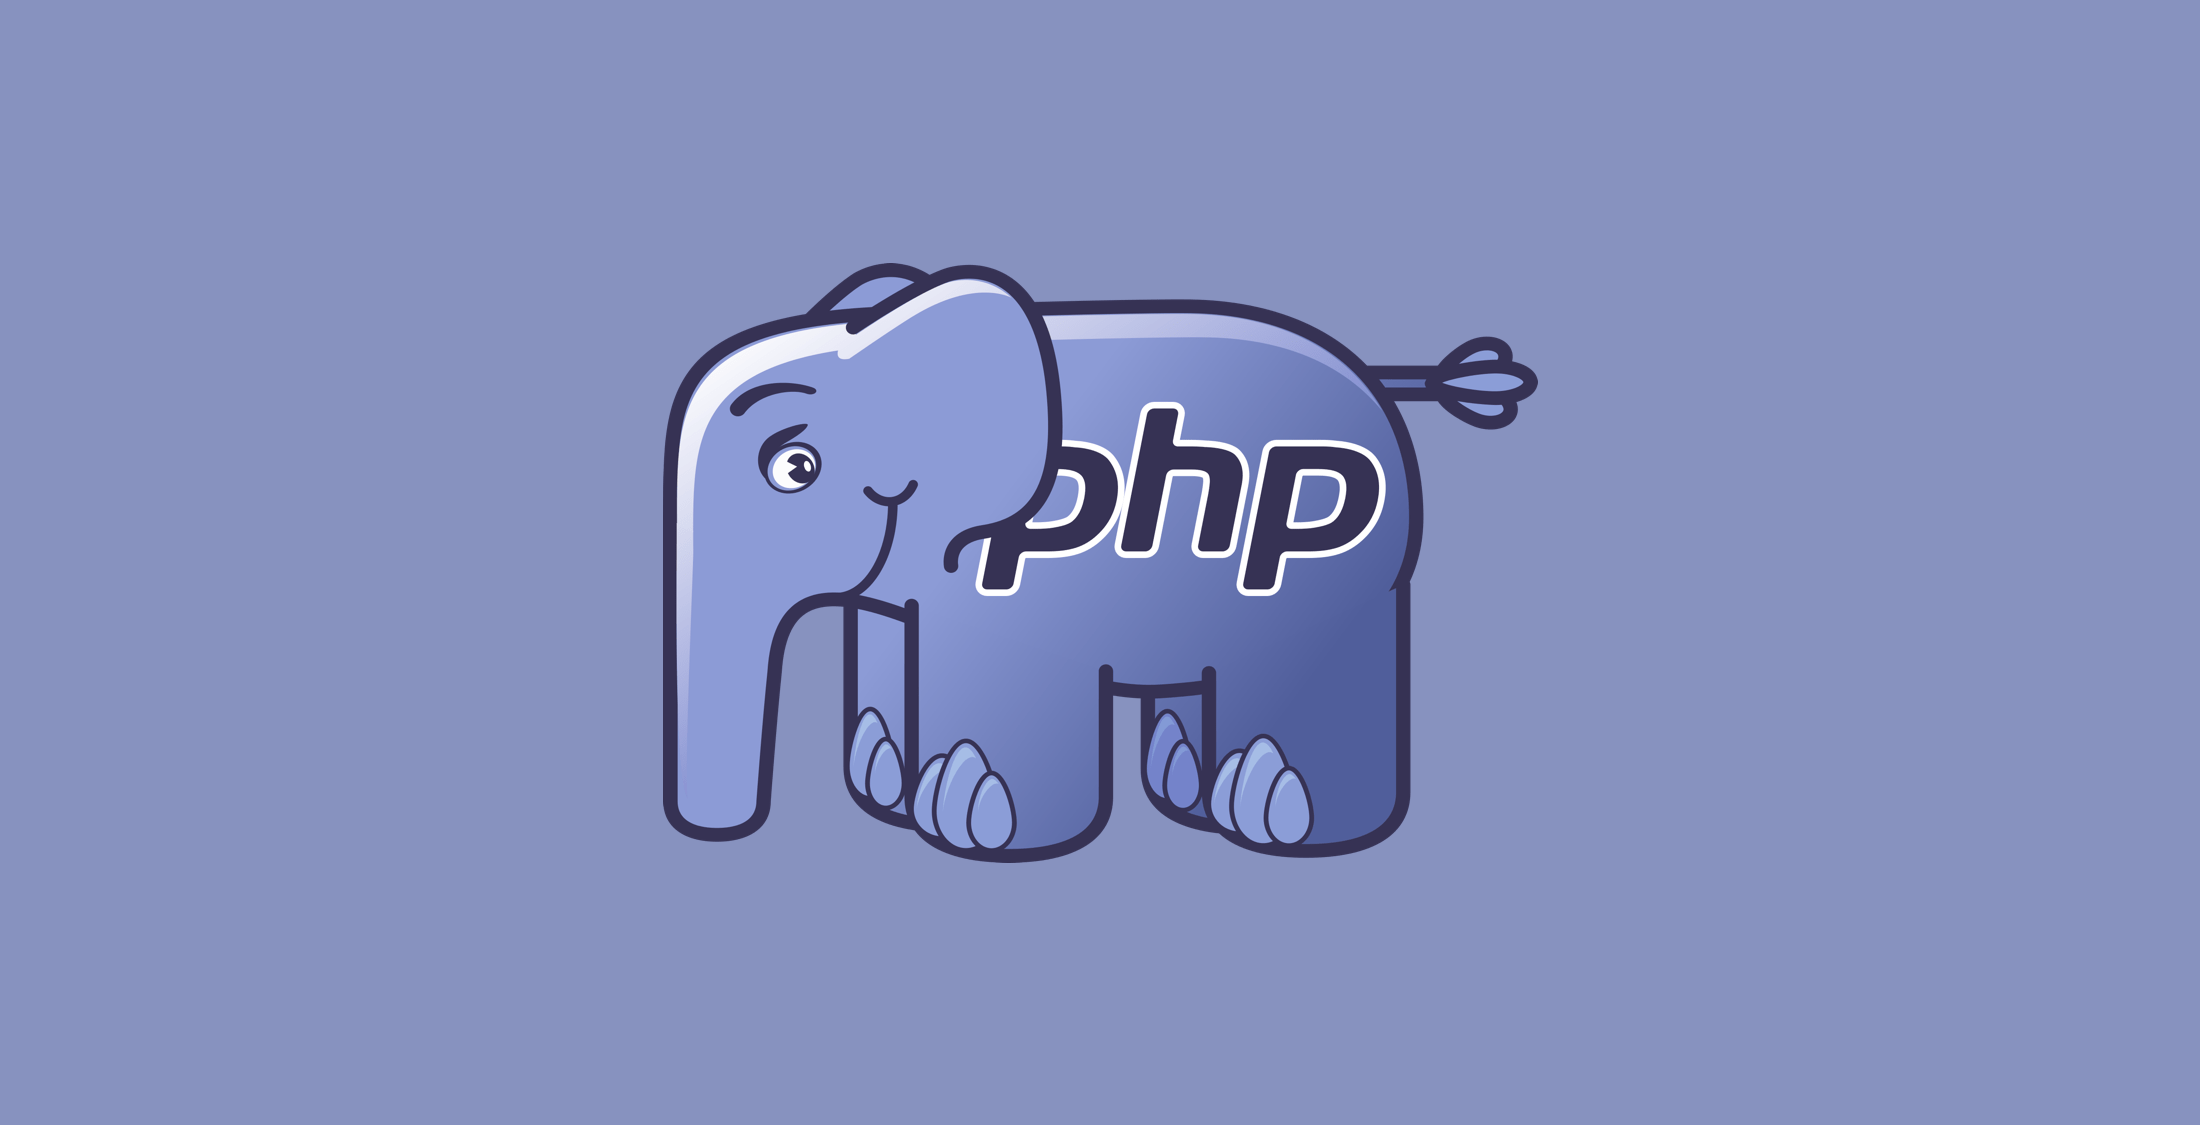 [php 7.3]